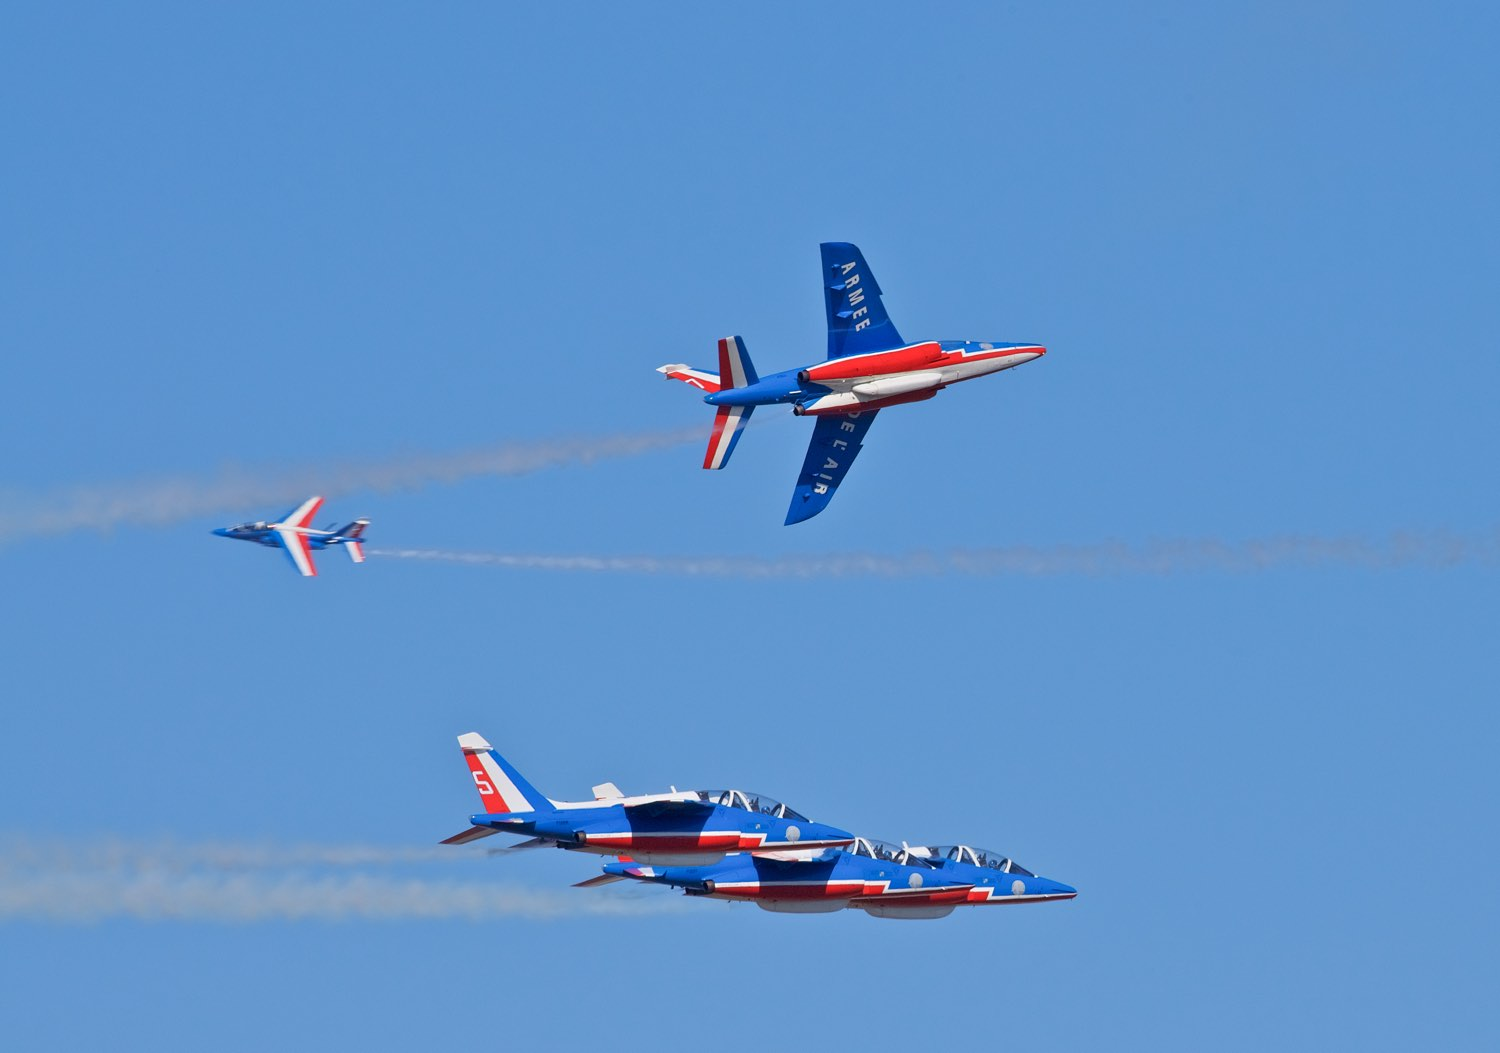 MEETING TOULOUSE FRANCAZAL 25/09/2016 Paf_3411